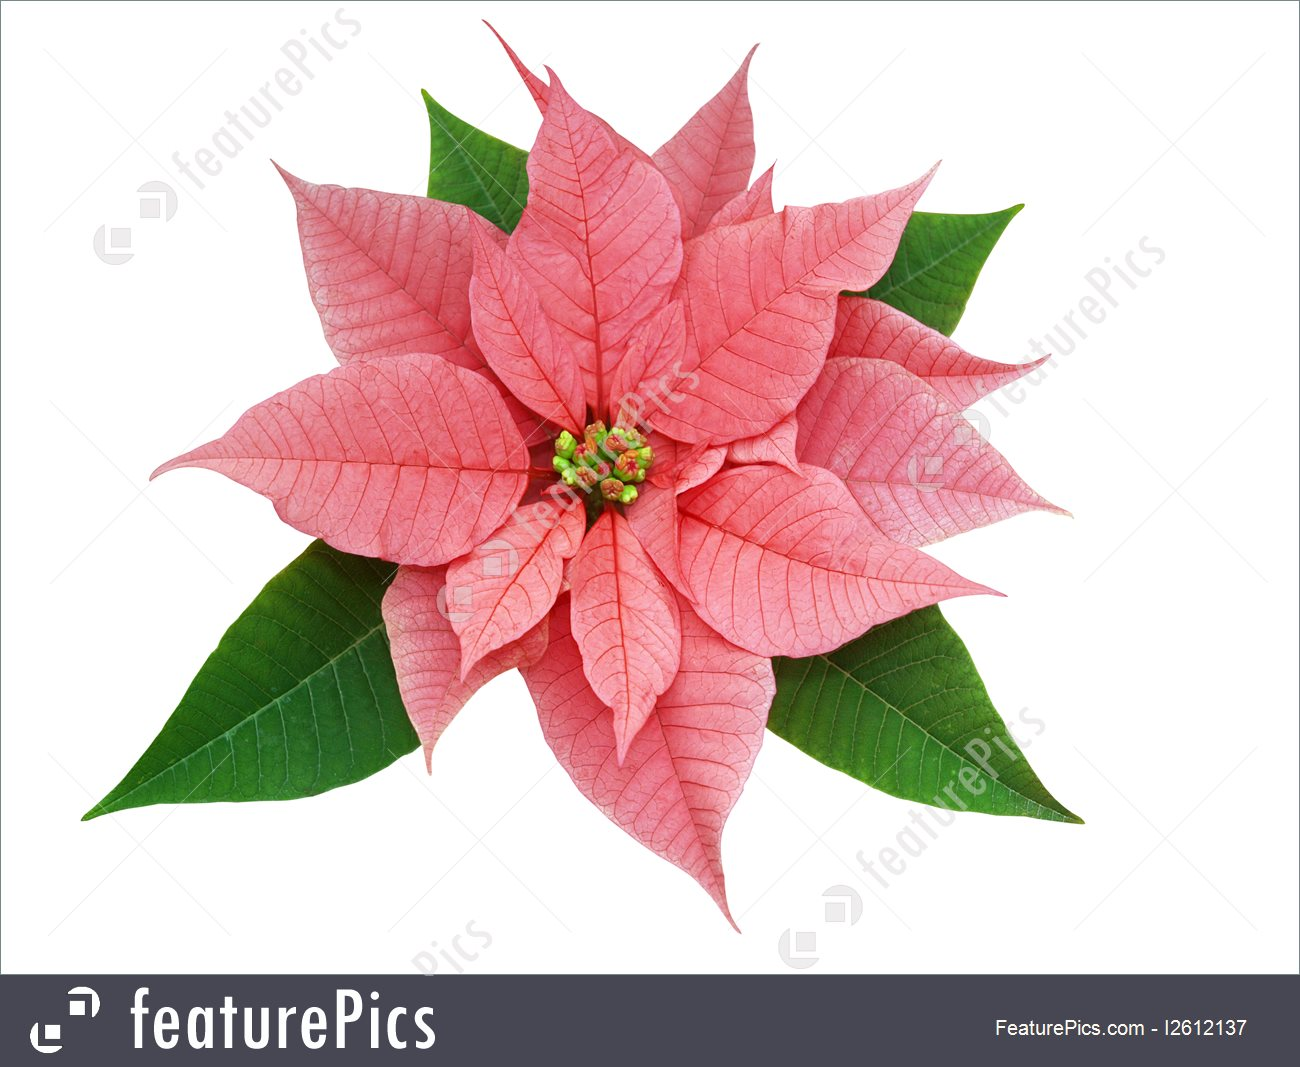 Pink poinsettia clipart.